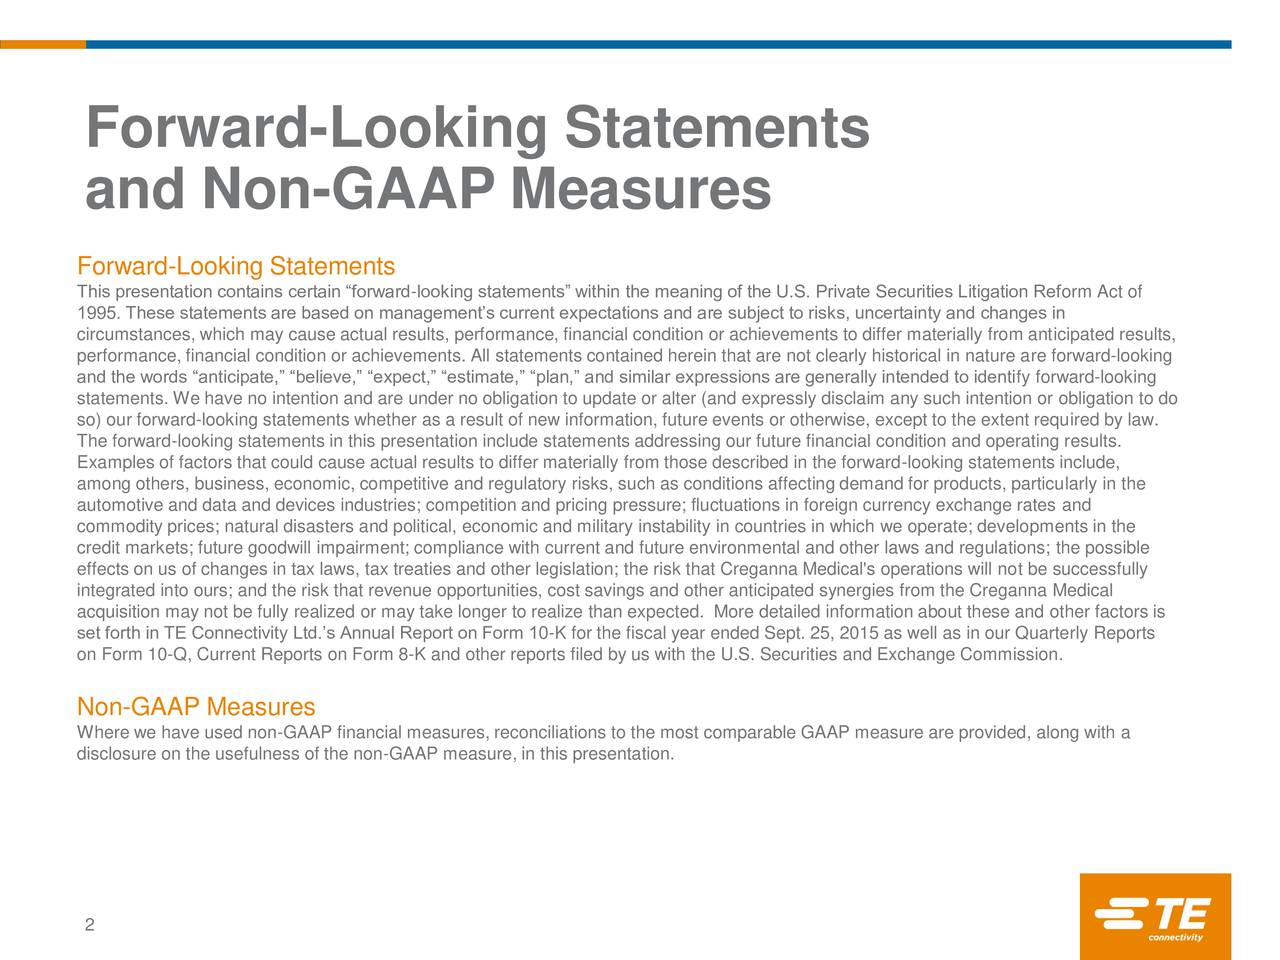 and Non-GAAP Measures Forward-Looking Statements This presentation contains certain forward-looking statements within the meaning of the U.S. Private Securities Litigation Reform Act of 1995. These statements are based on managements current expectations and are subject to risks, uncertainty and changes in circumstances, which may cause actual results, performance, financial condition or achievements to differ materially from anticipated results, performance, financial condition or achievements. All statements contained herein that are not clearly historical in nature are forward-looking and the words anticipate, believe, expect, estimate, plan, and similar expressions are generally intended to identify forward-looking statements. We have no intention and are under no obligation to update or alter (and expressly disclaim any such intention or obligation to do so) our forward-looking statements whether as a result of new information, future events or otherwise, except to the extent required by law. The forward-looking statements in this presentation include statements addressing our future financial condition and operating results. Examples of factors that could cause actual results to differ materially from those described in the forward-looking statements include, among others, business, economic, competitive and regulatory risks, such as conditions affecting demand for products, particularly in the automotive and data and devices industries; competition and pricing pressure; fluctuations in foreign currency exchange rates and commodity prices; natural disasters and political, economic and military instability in countries in which we operate; developments in the credit markets; future goodwill impairment; compliance with current and future environmental and other laws and regulations; the possible effects on us of changes in tax laws, tax treaties and other legislation; the risk that Creganna Medical's operations will not be successfully integrated into ours; and 